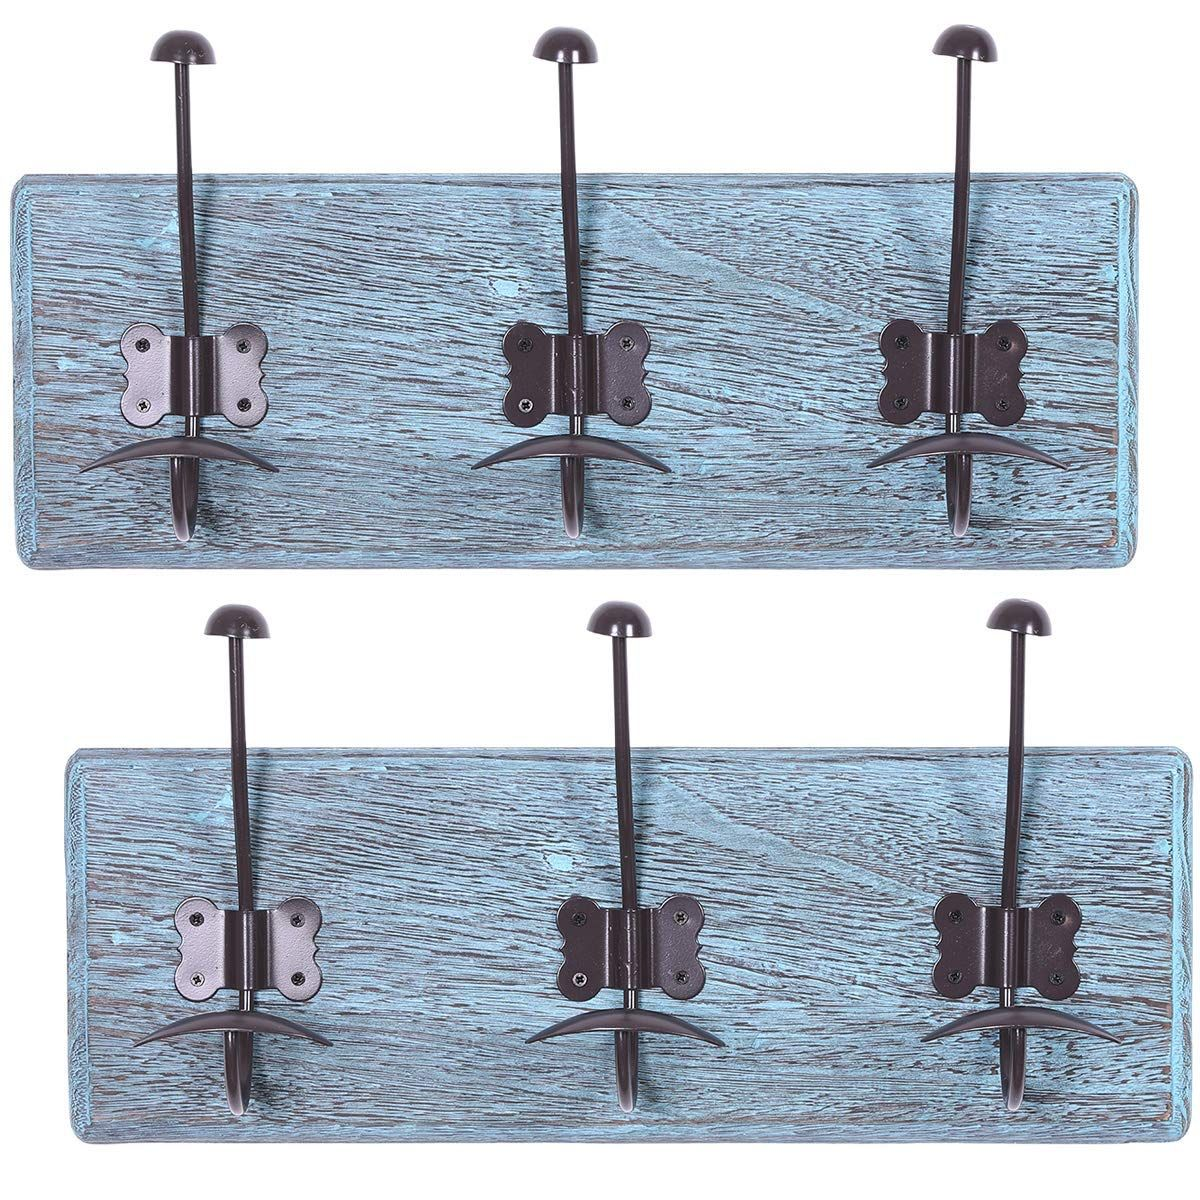 Rustic Wall Mounted Coat Rack With 3 Sturdy Hooks Set Of 2 Vintage Entryway Wooden Coat Racks Rustic Wooden Coat Rack Wall Mounted Coat Rack Rustic Blue